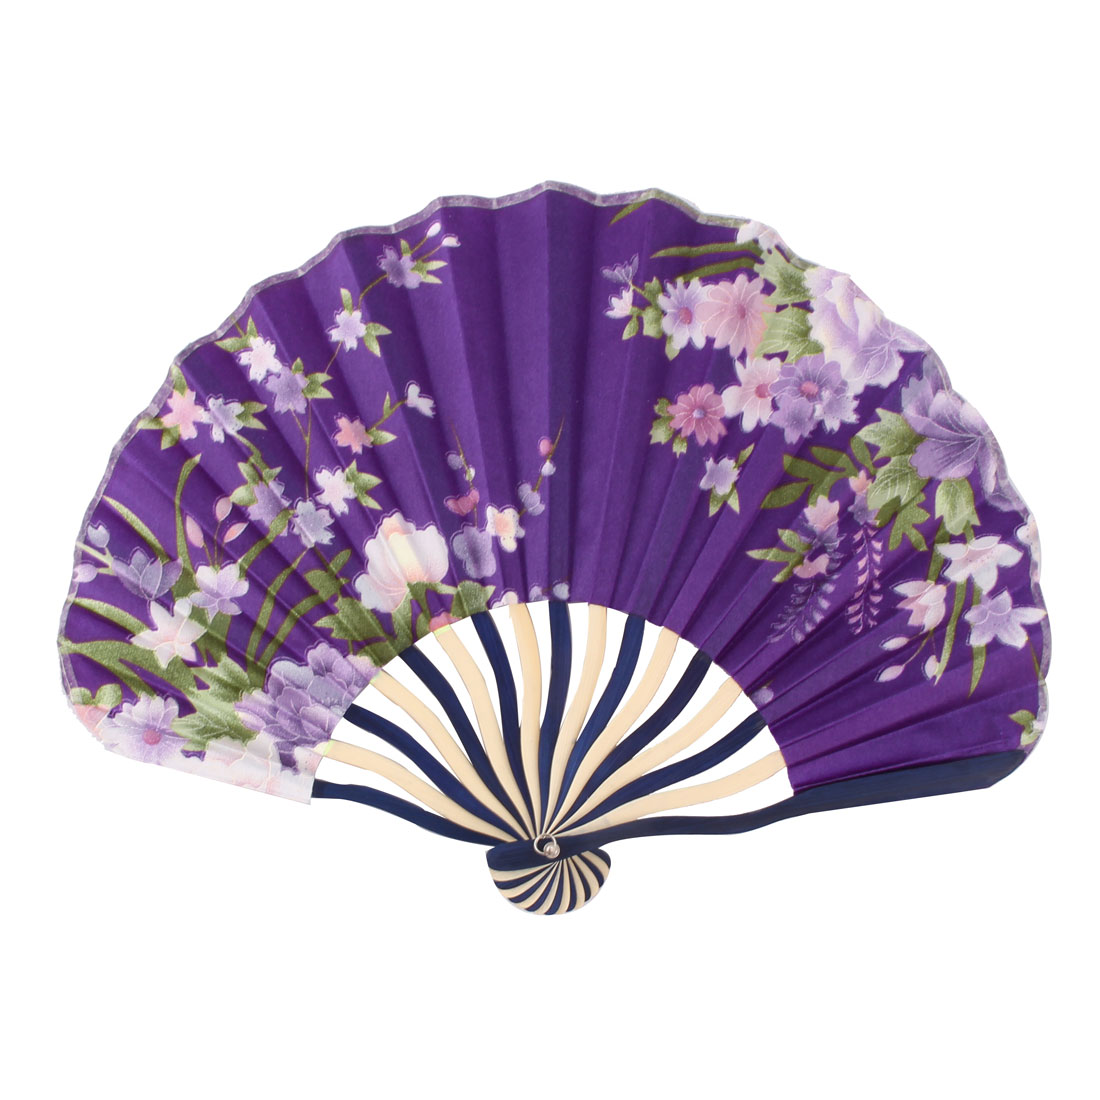 Dancing Party Bamboo Frame Peony Printed Seashell Shaped Hand Folding Cooling Fan